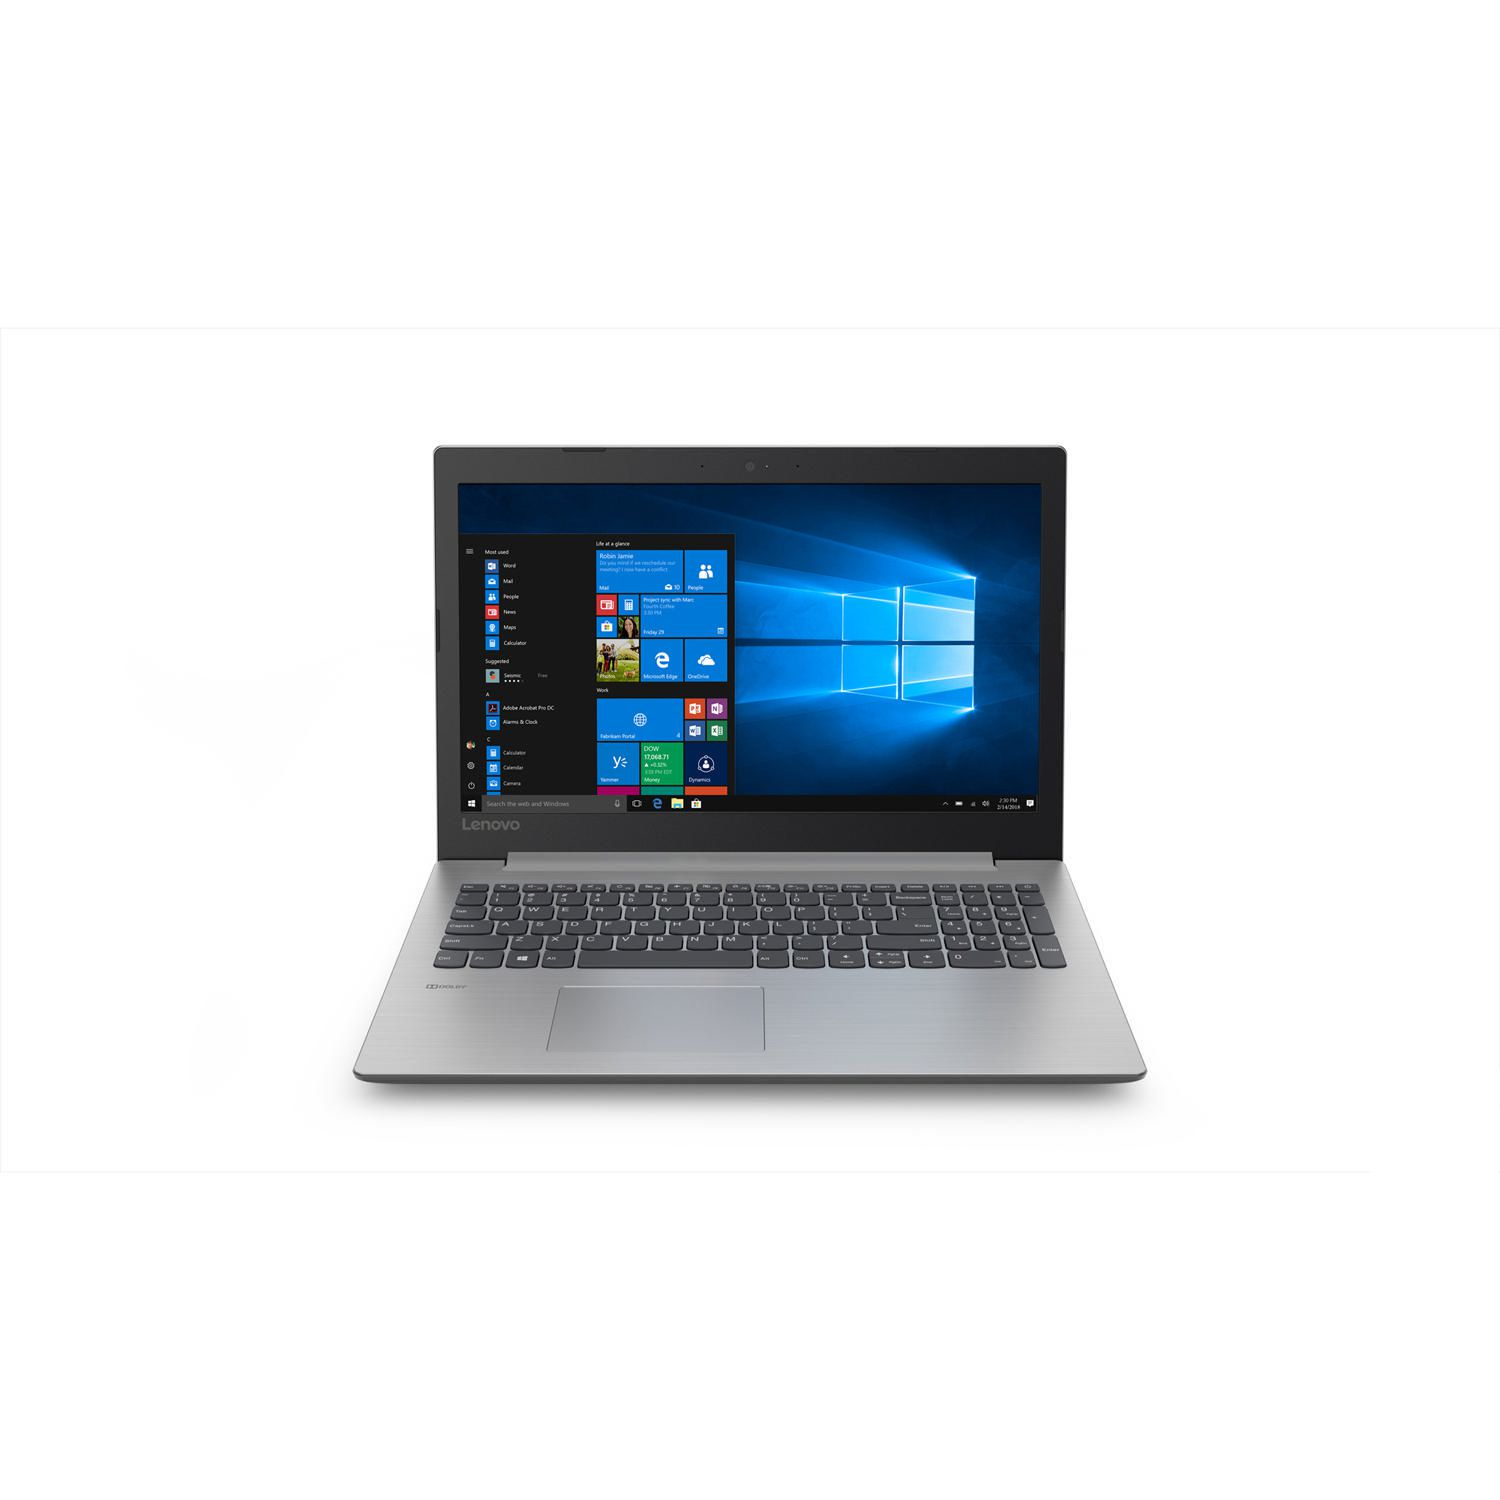 Lenovo Laptop Lenovo Ideapad 330 81de00laus 15 6 Laptop With Intel Core I3 8130u 2 2 Ghz Processor Platinum Grey